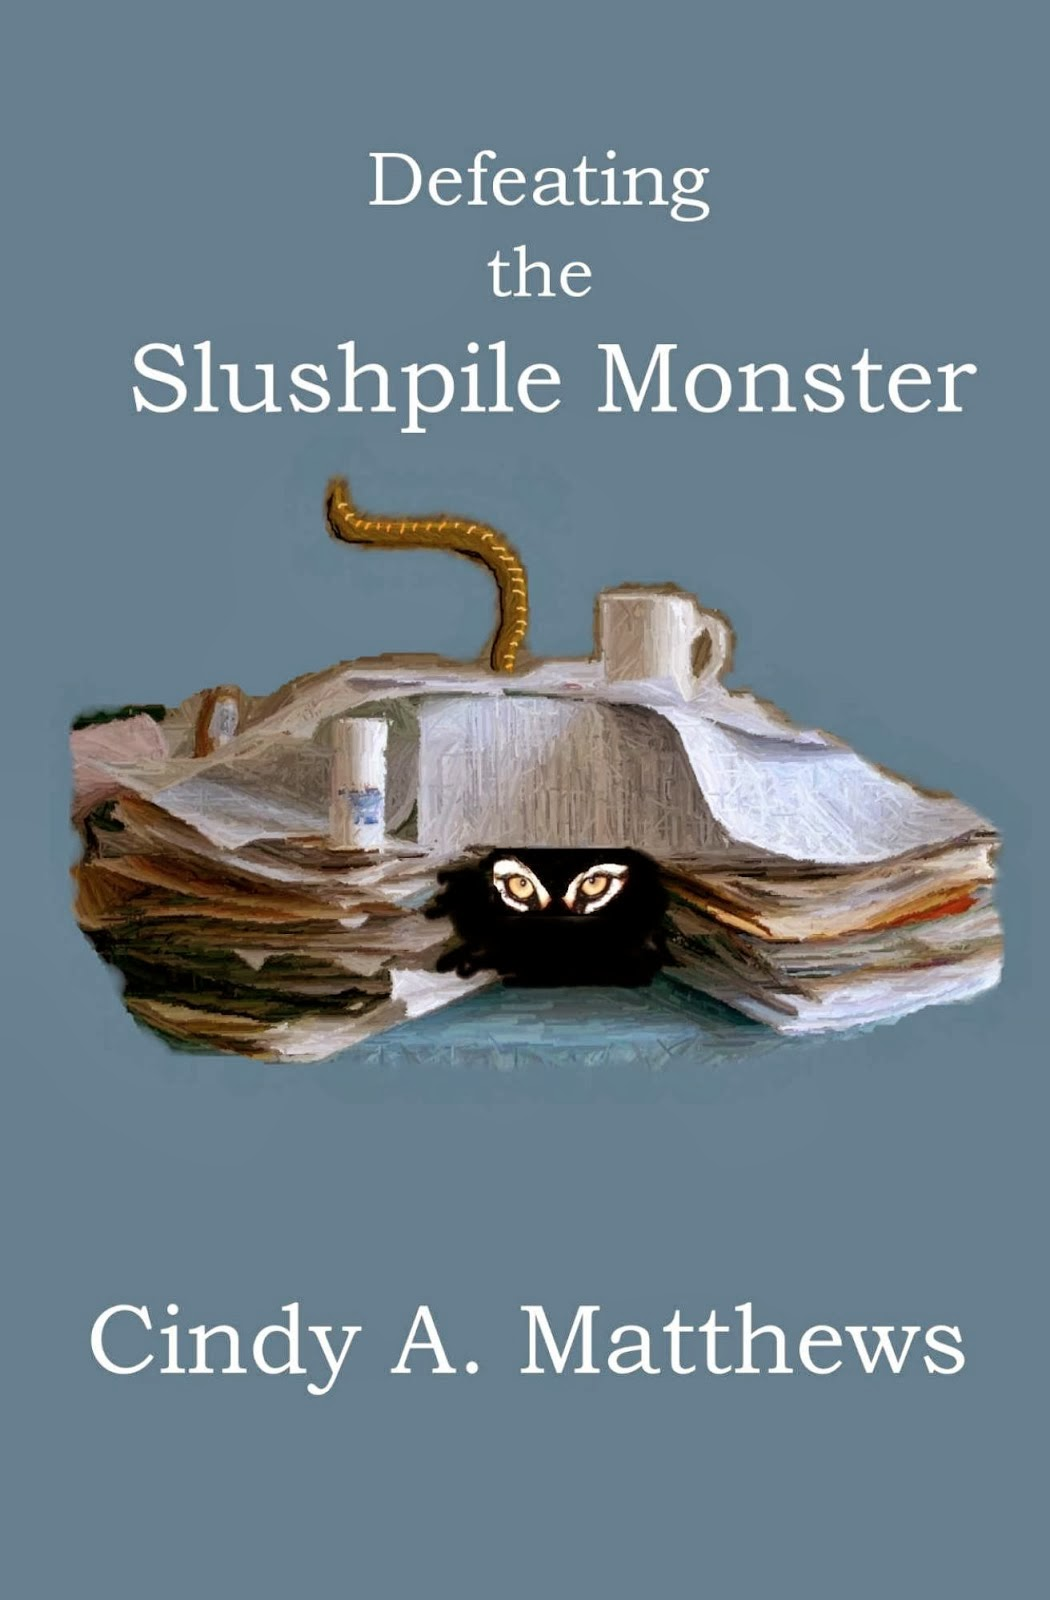 Defeating the Slushpile Monster